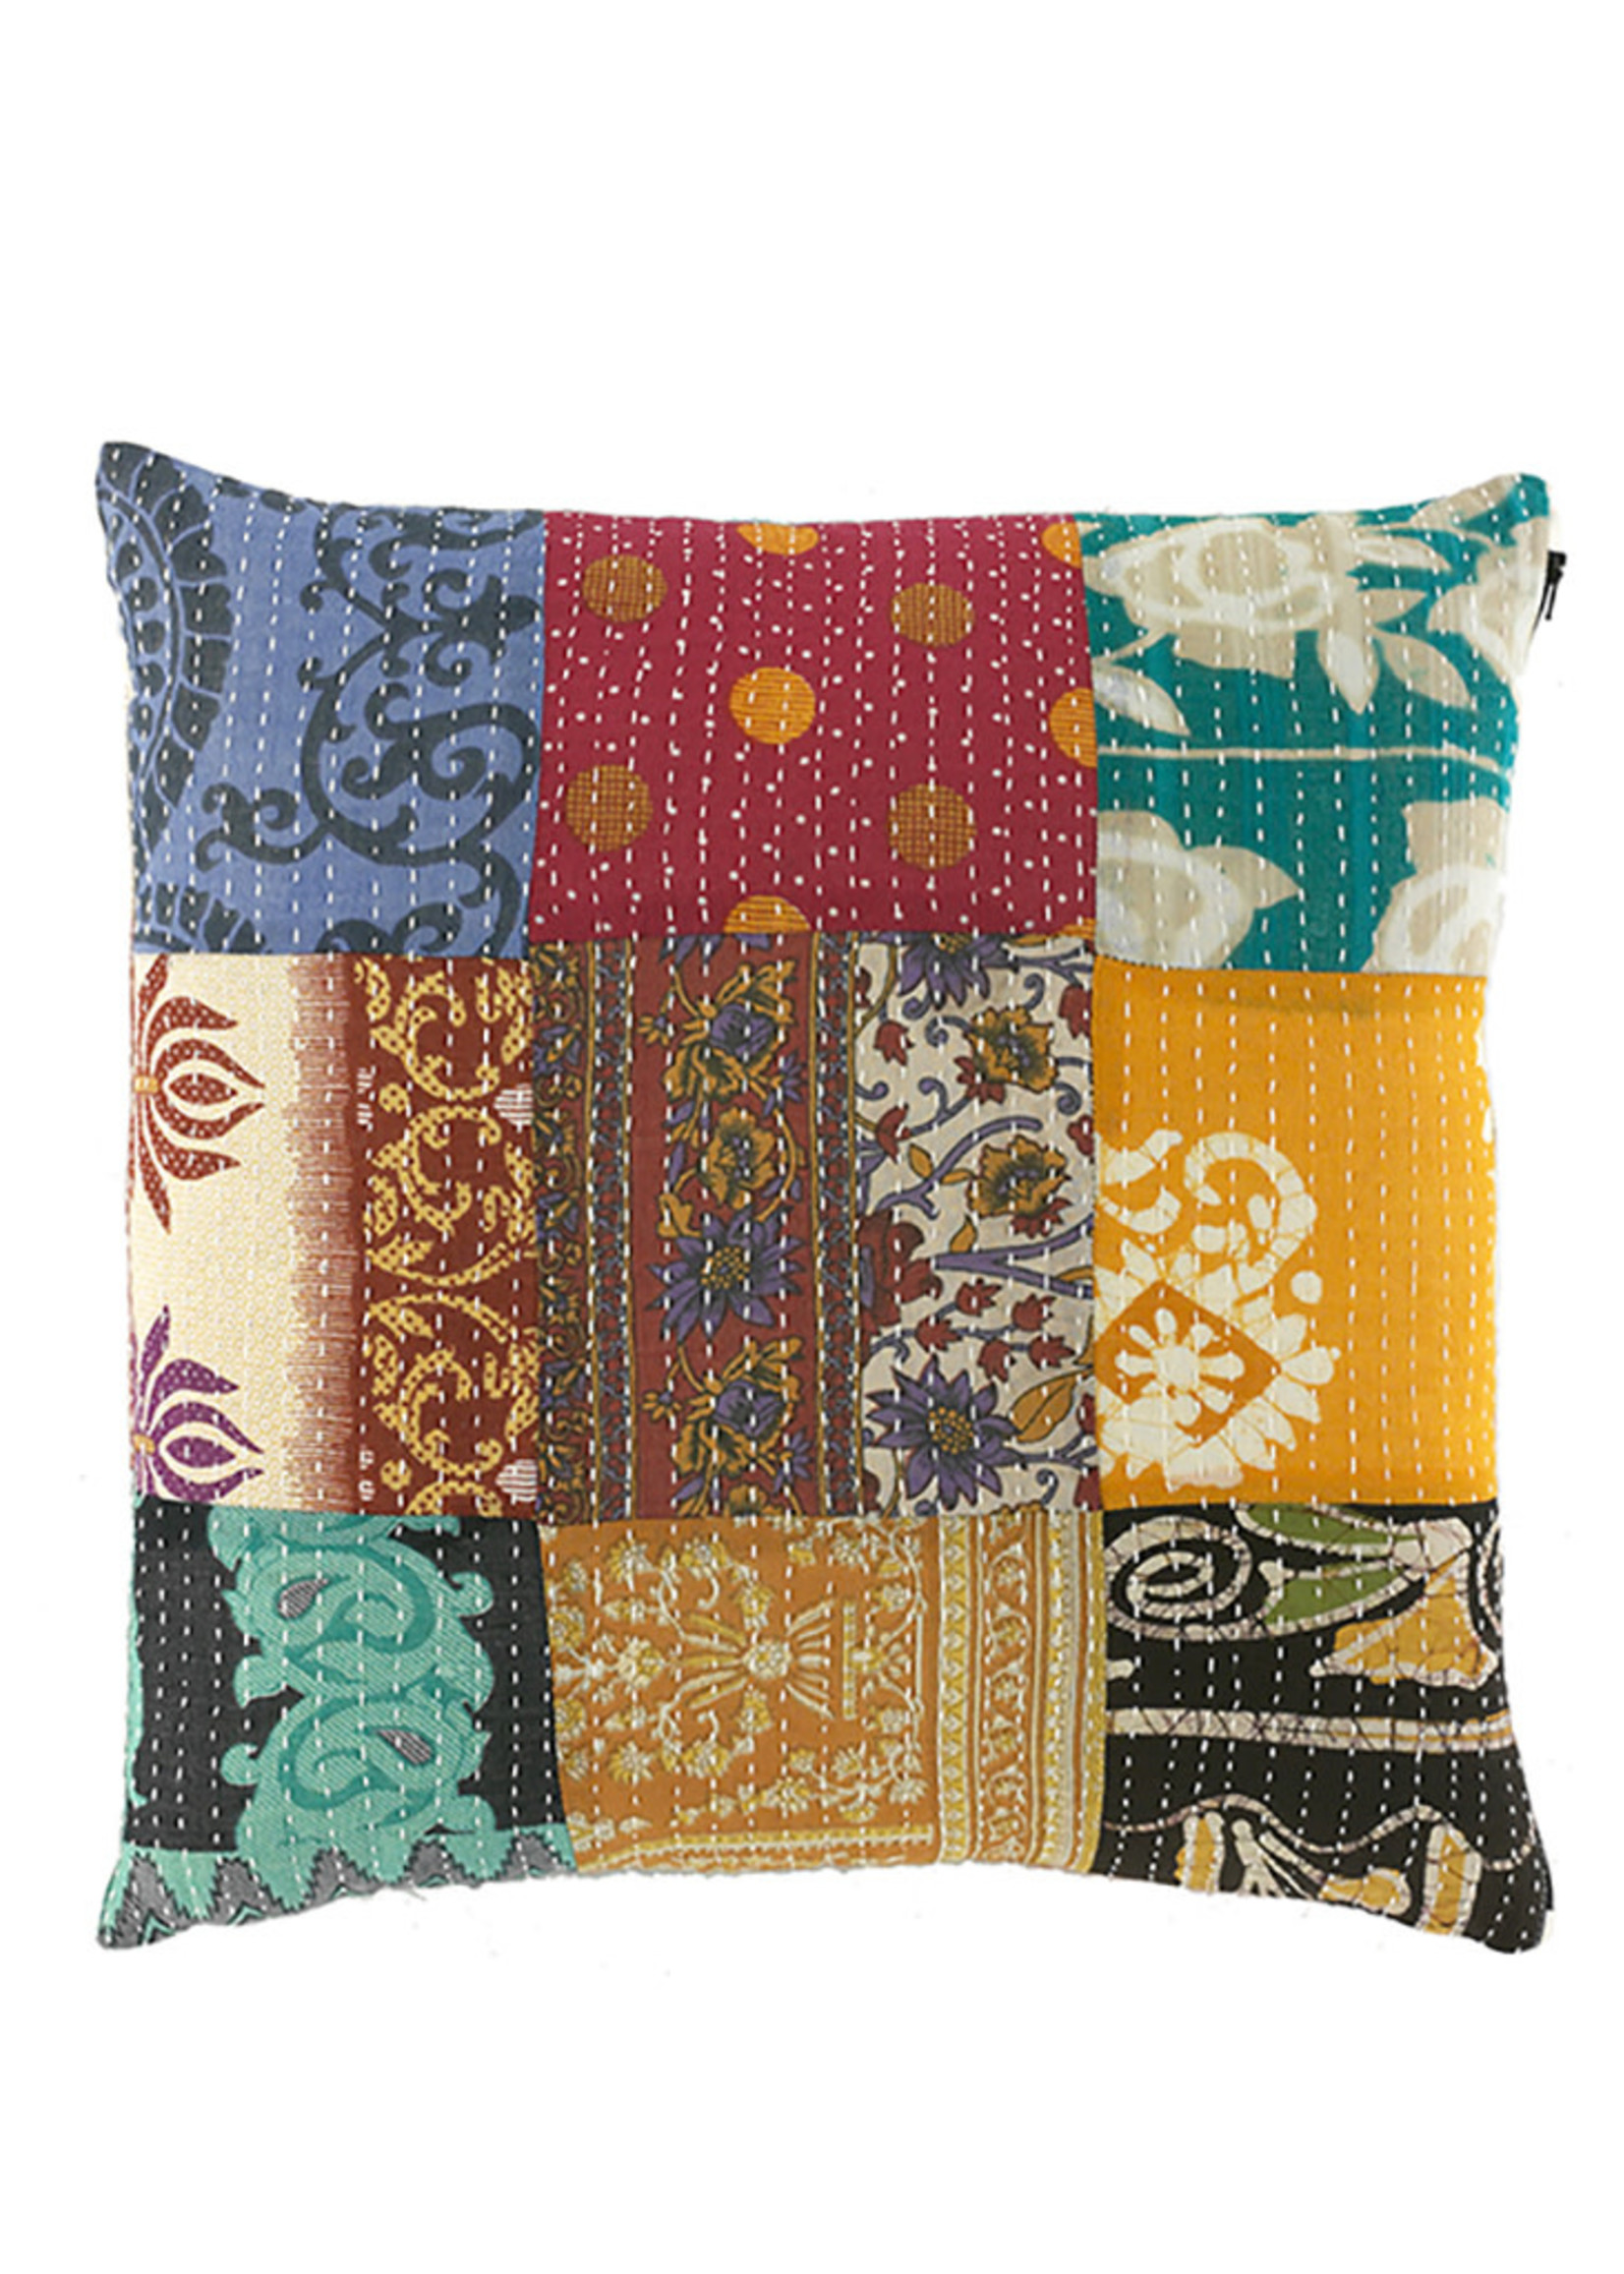 Kantha Patchwork Square Pillow